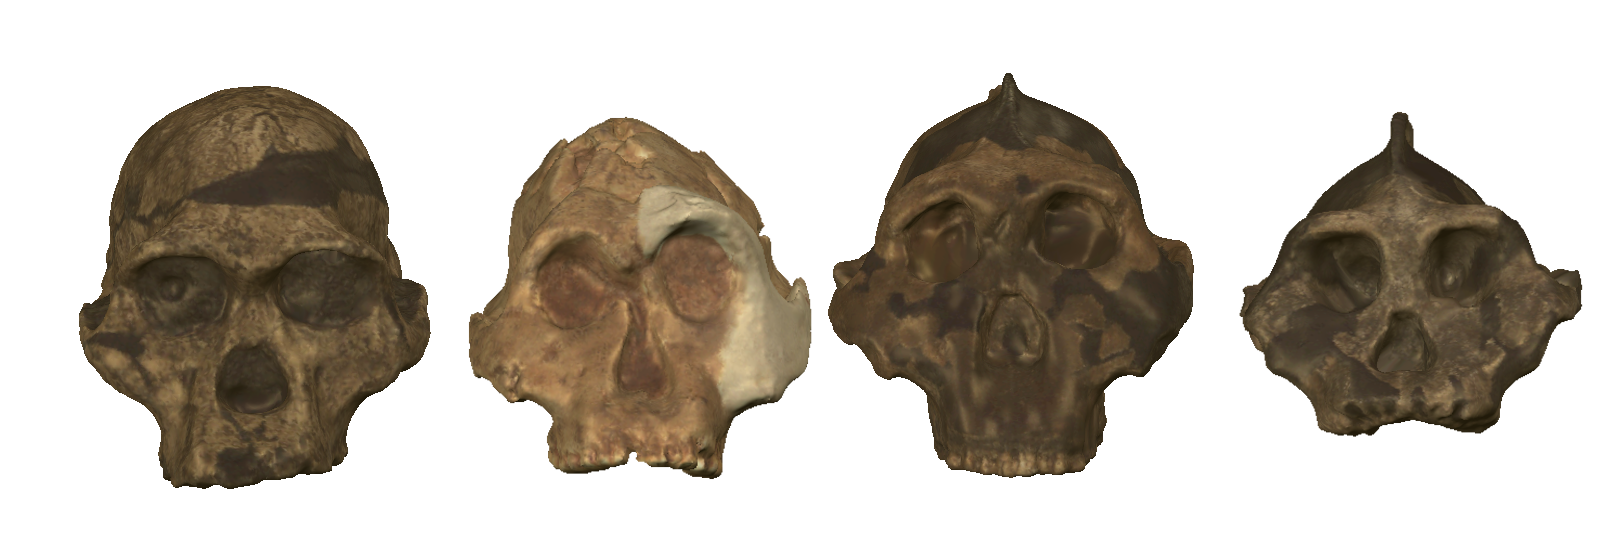 On the left is Australopithecus,